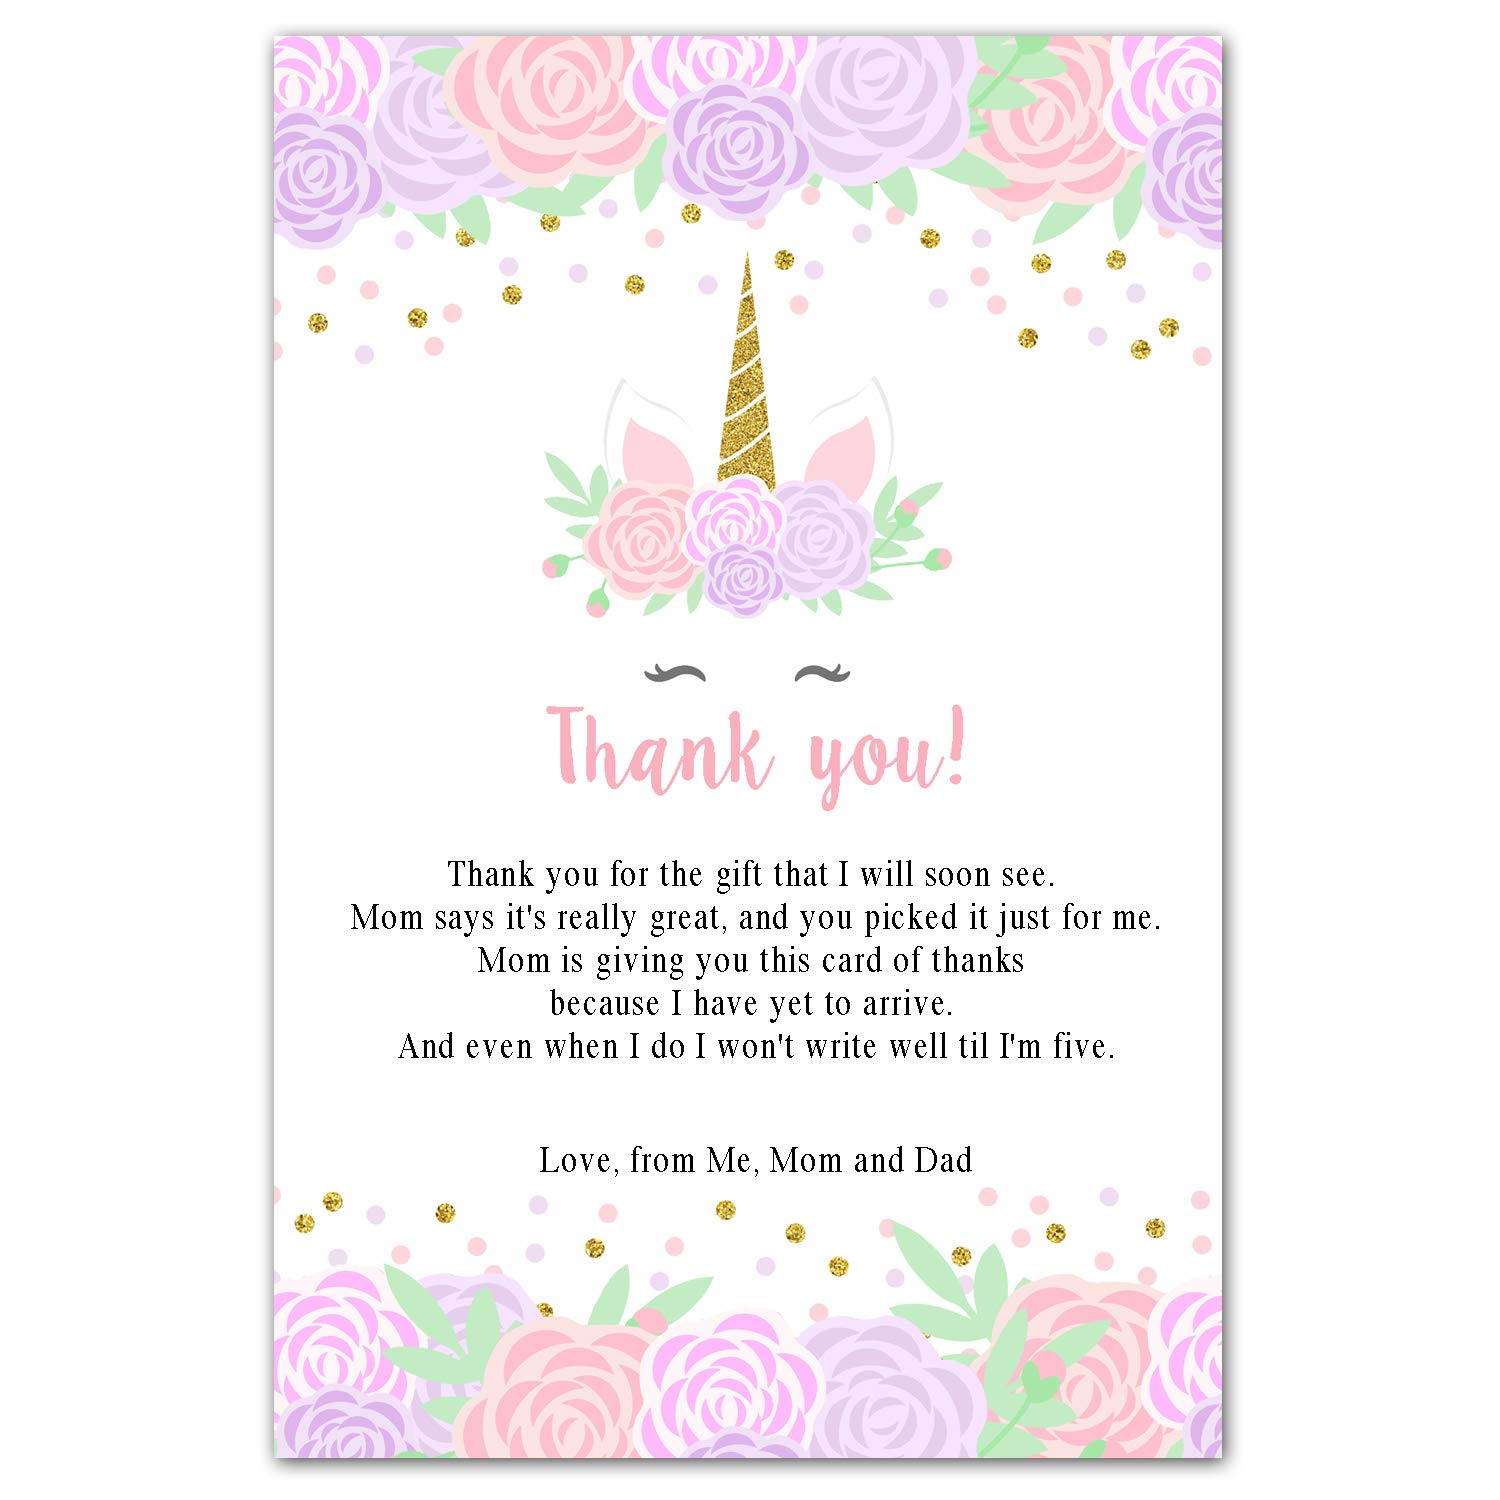 30 Thank You Cards Unicorn Baby Shower Personalized Photo Paper